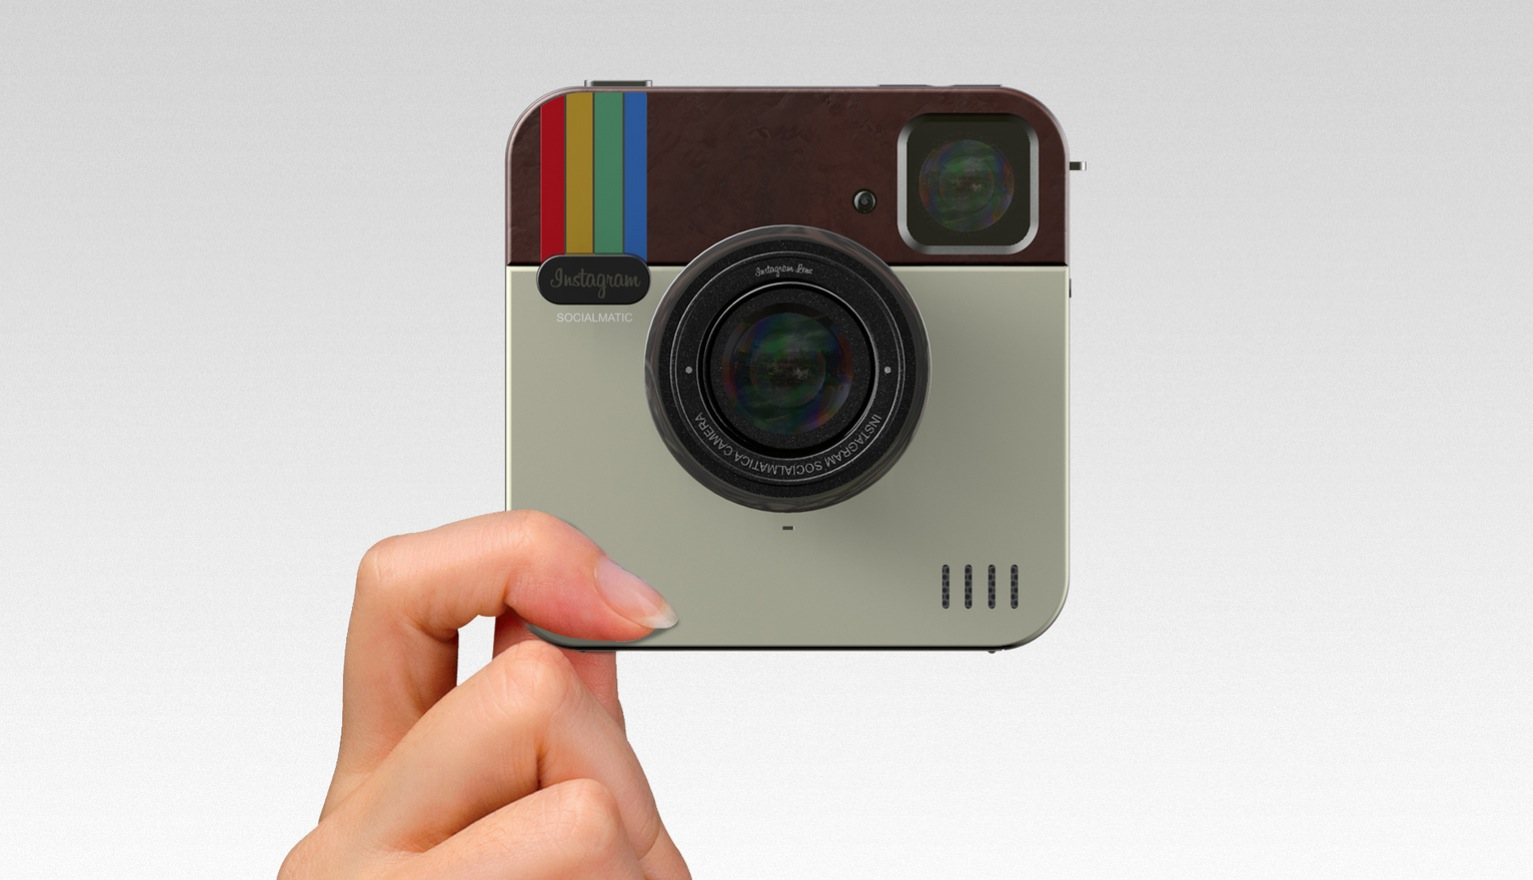 Download All Pictures And Videos From InstAccount with Captions